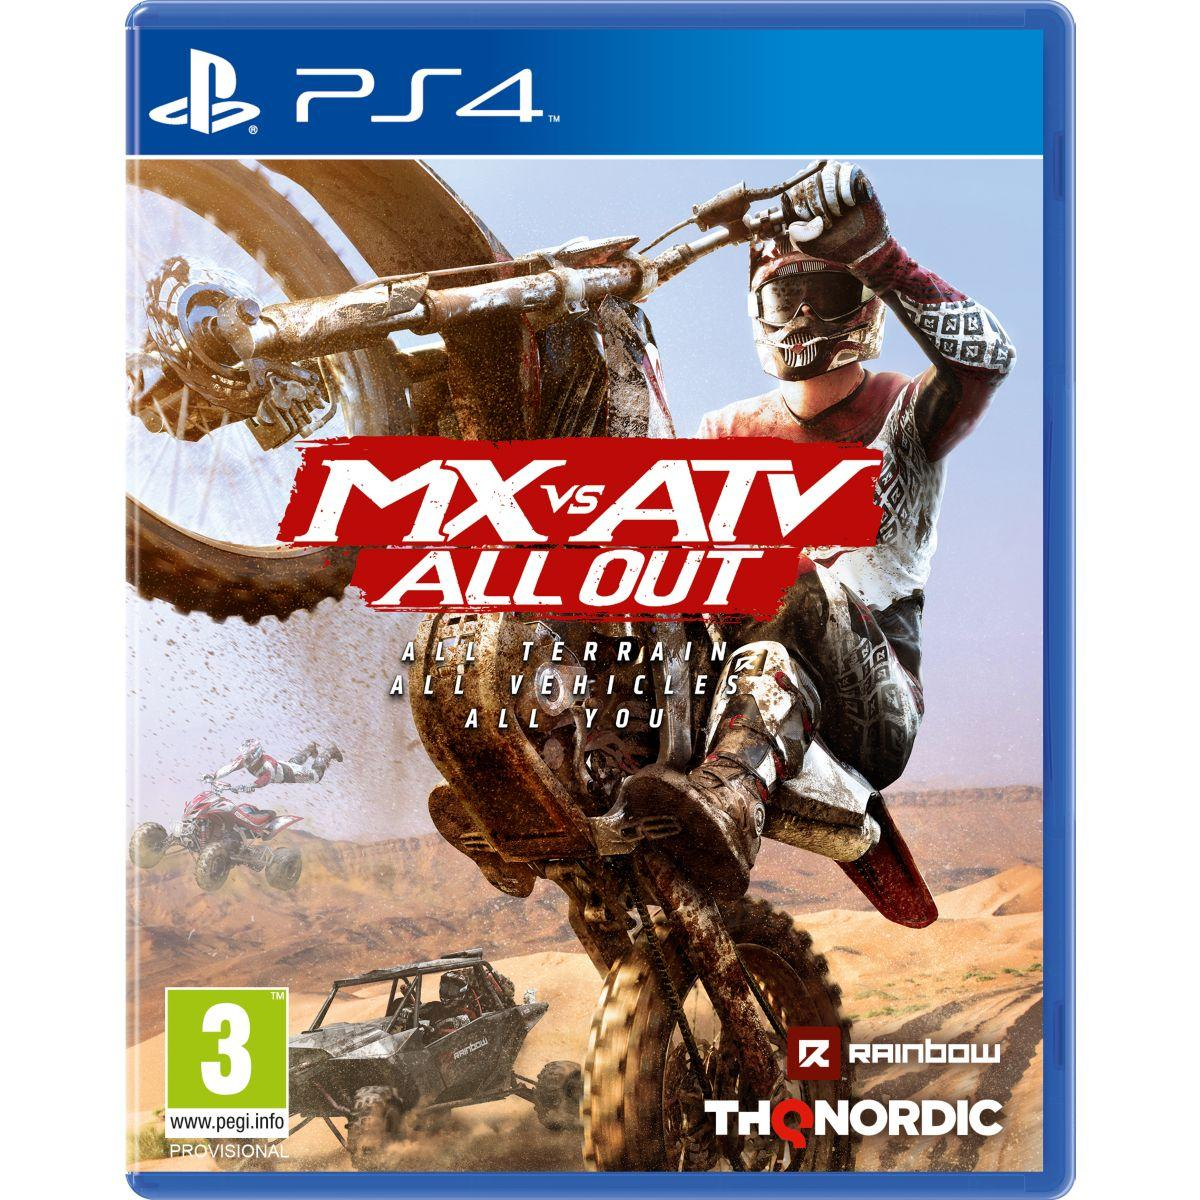 Jeu ps4 just for games mx vs atv all out (photo)